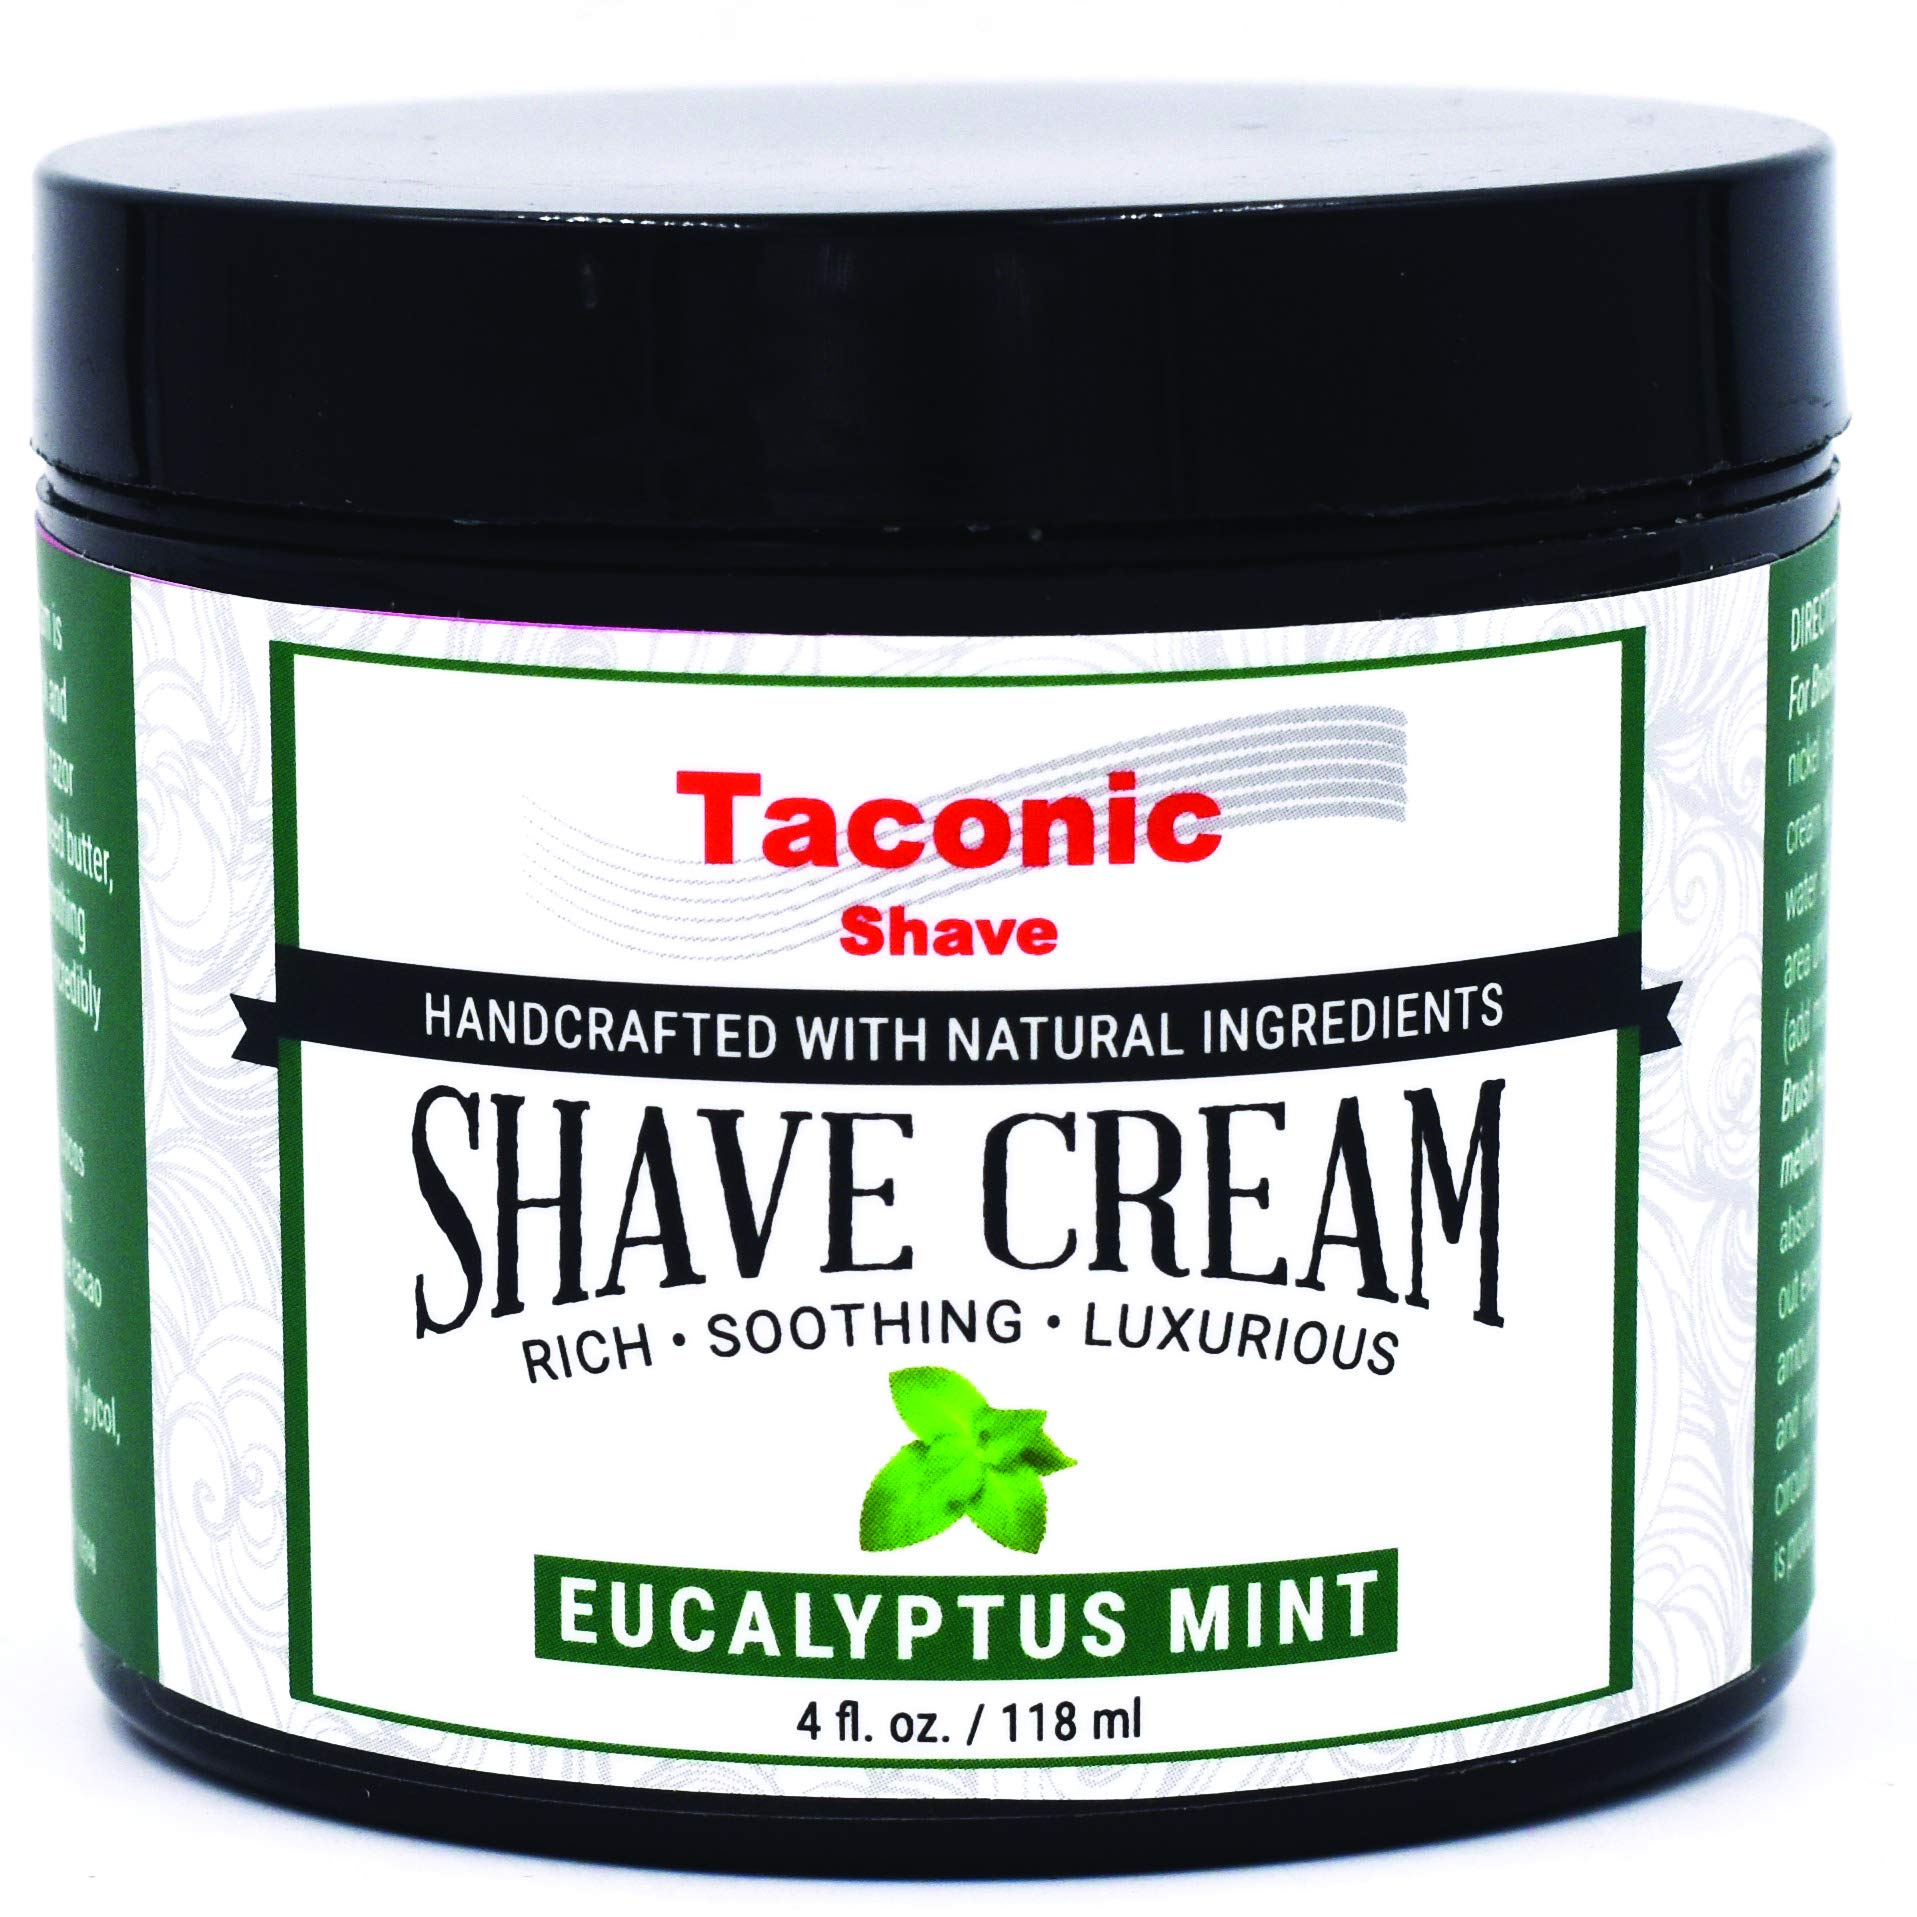 Taconic Shave EUCALYPTUS MINT Shaving Cream, Creates a Rich and Luxurious Lather - 4 oz.